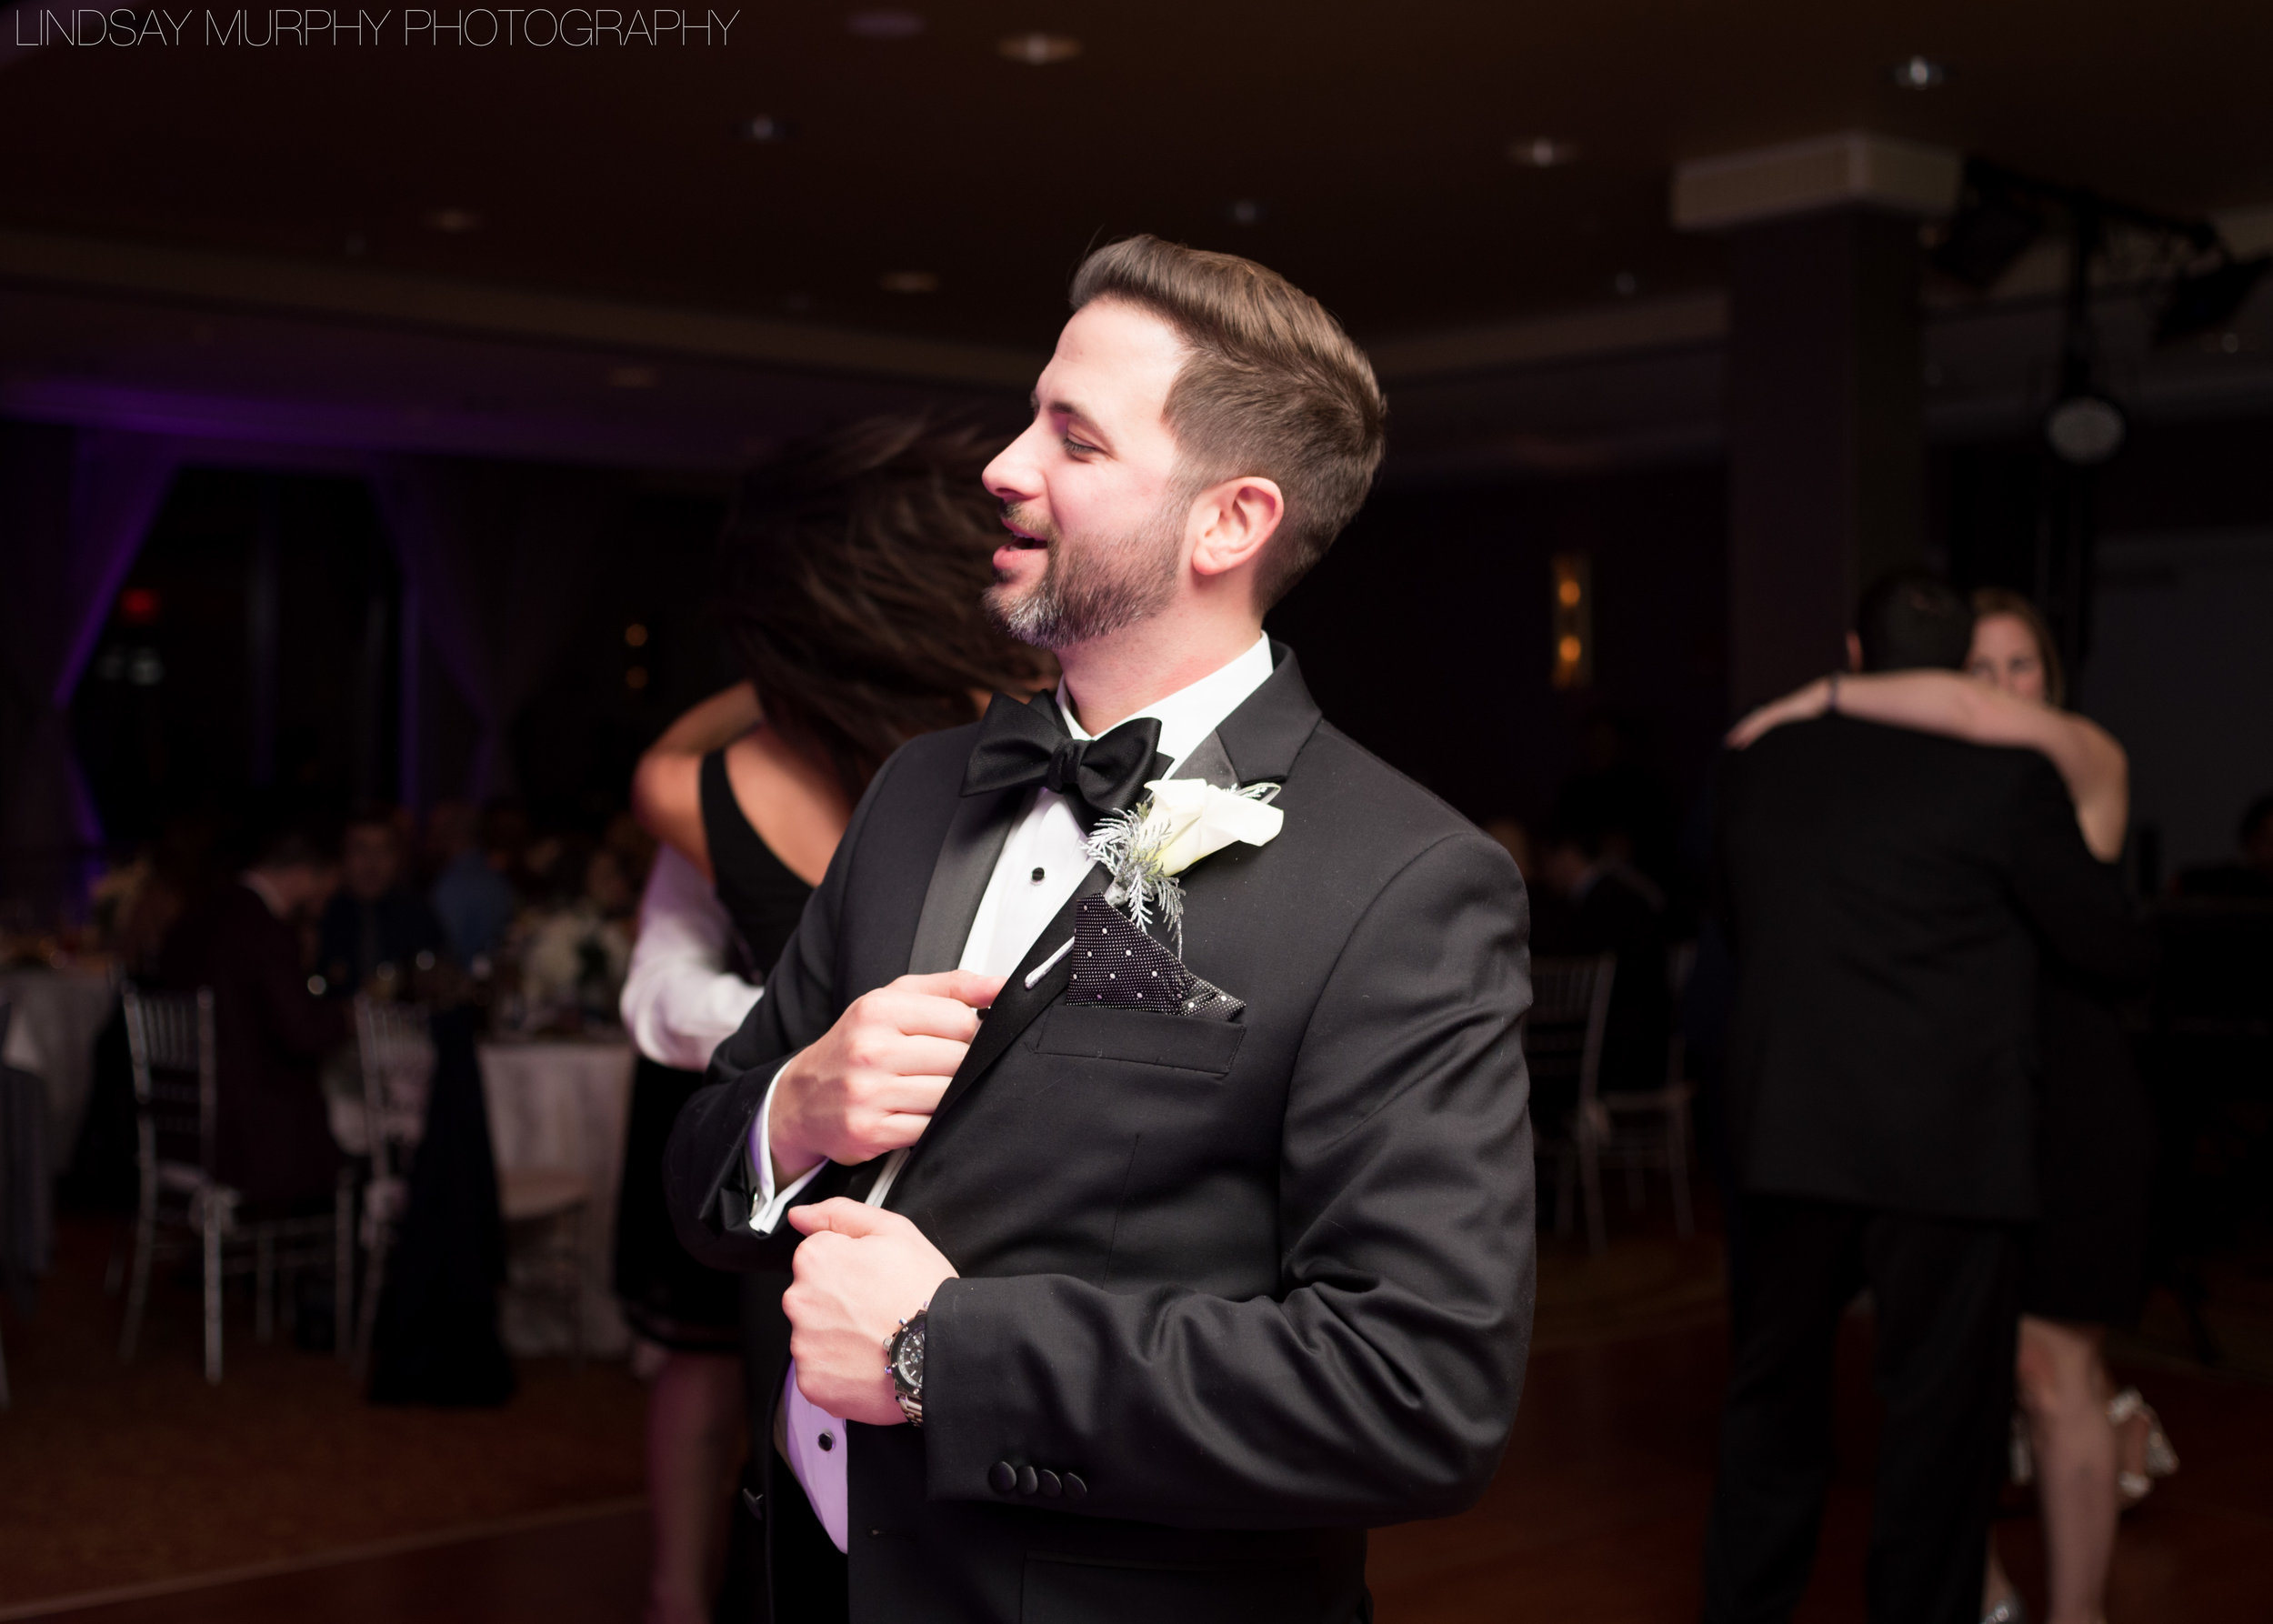 boston_wedding_photographer-474.jpg